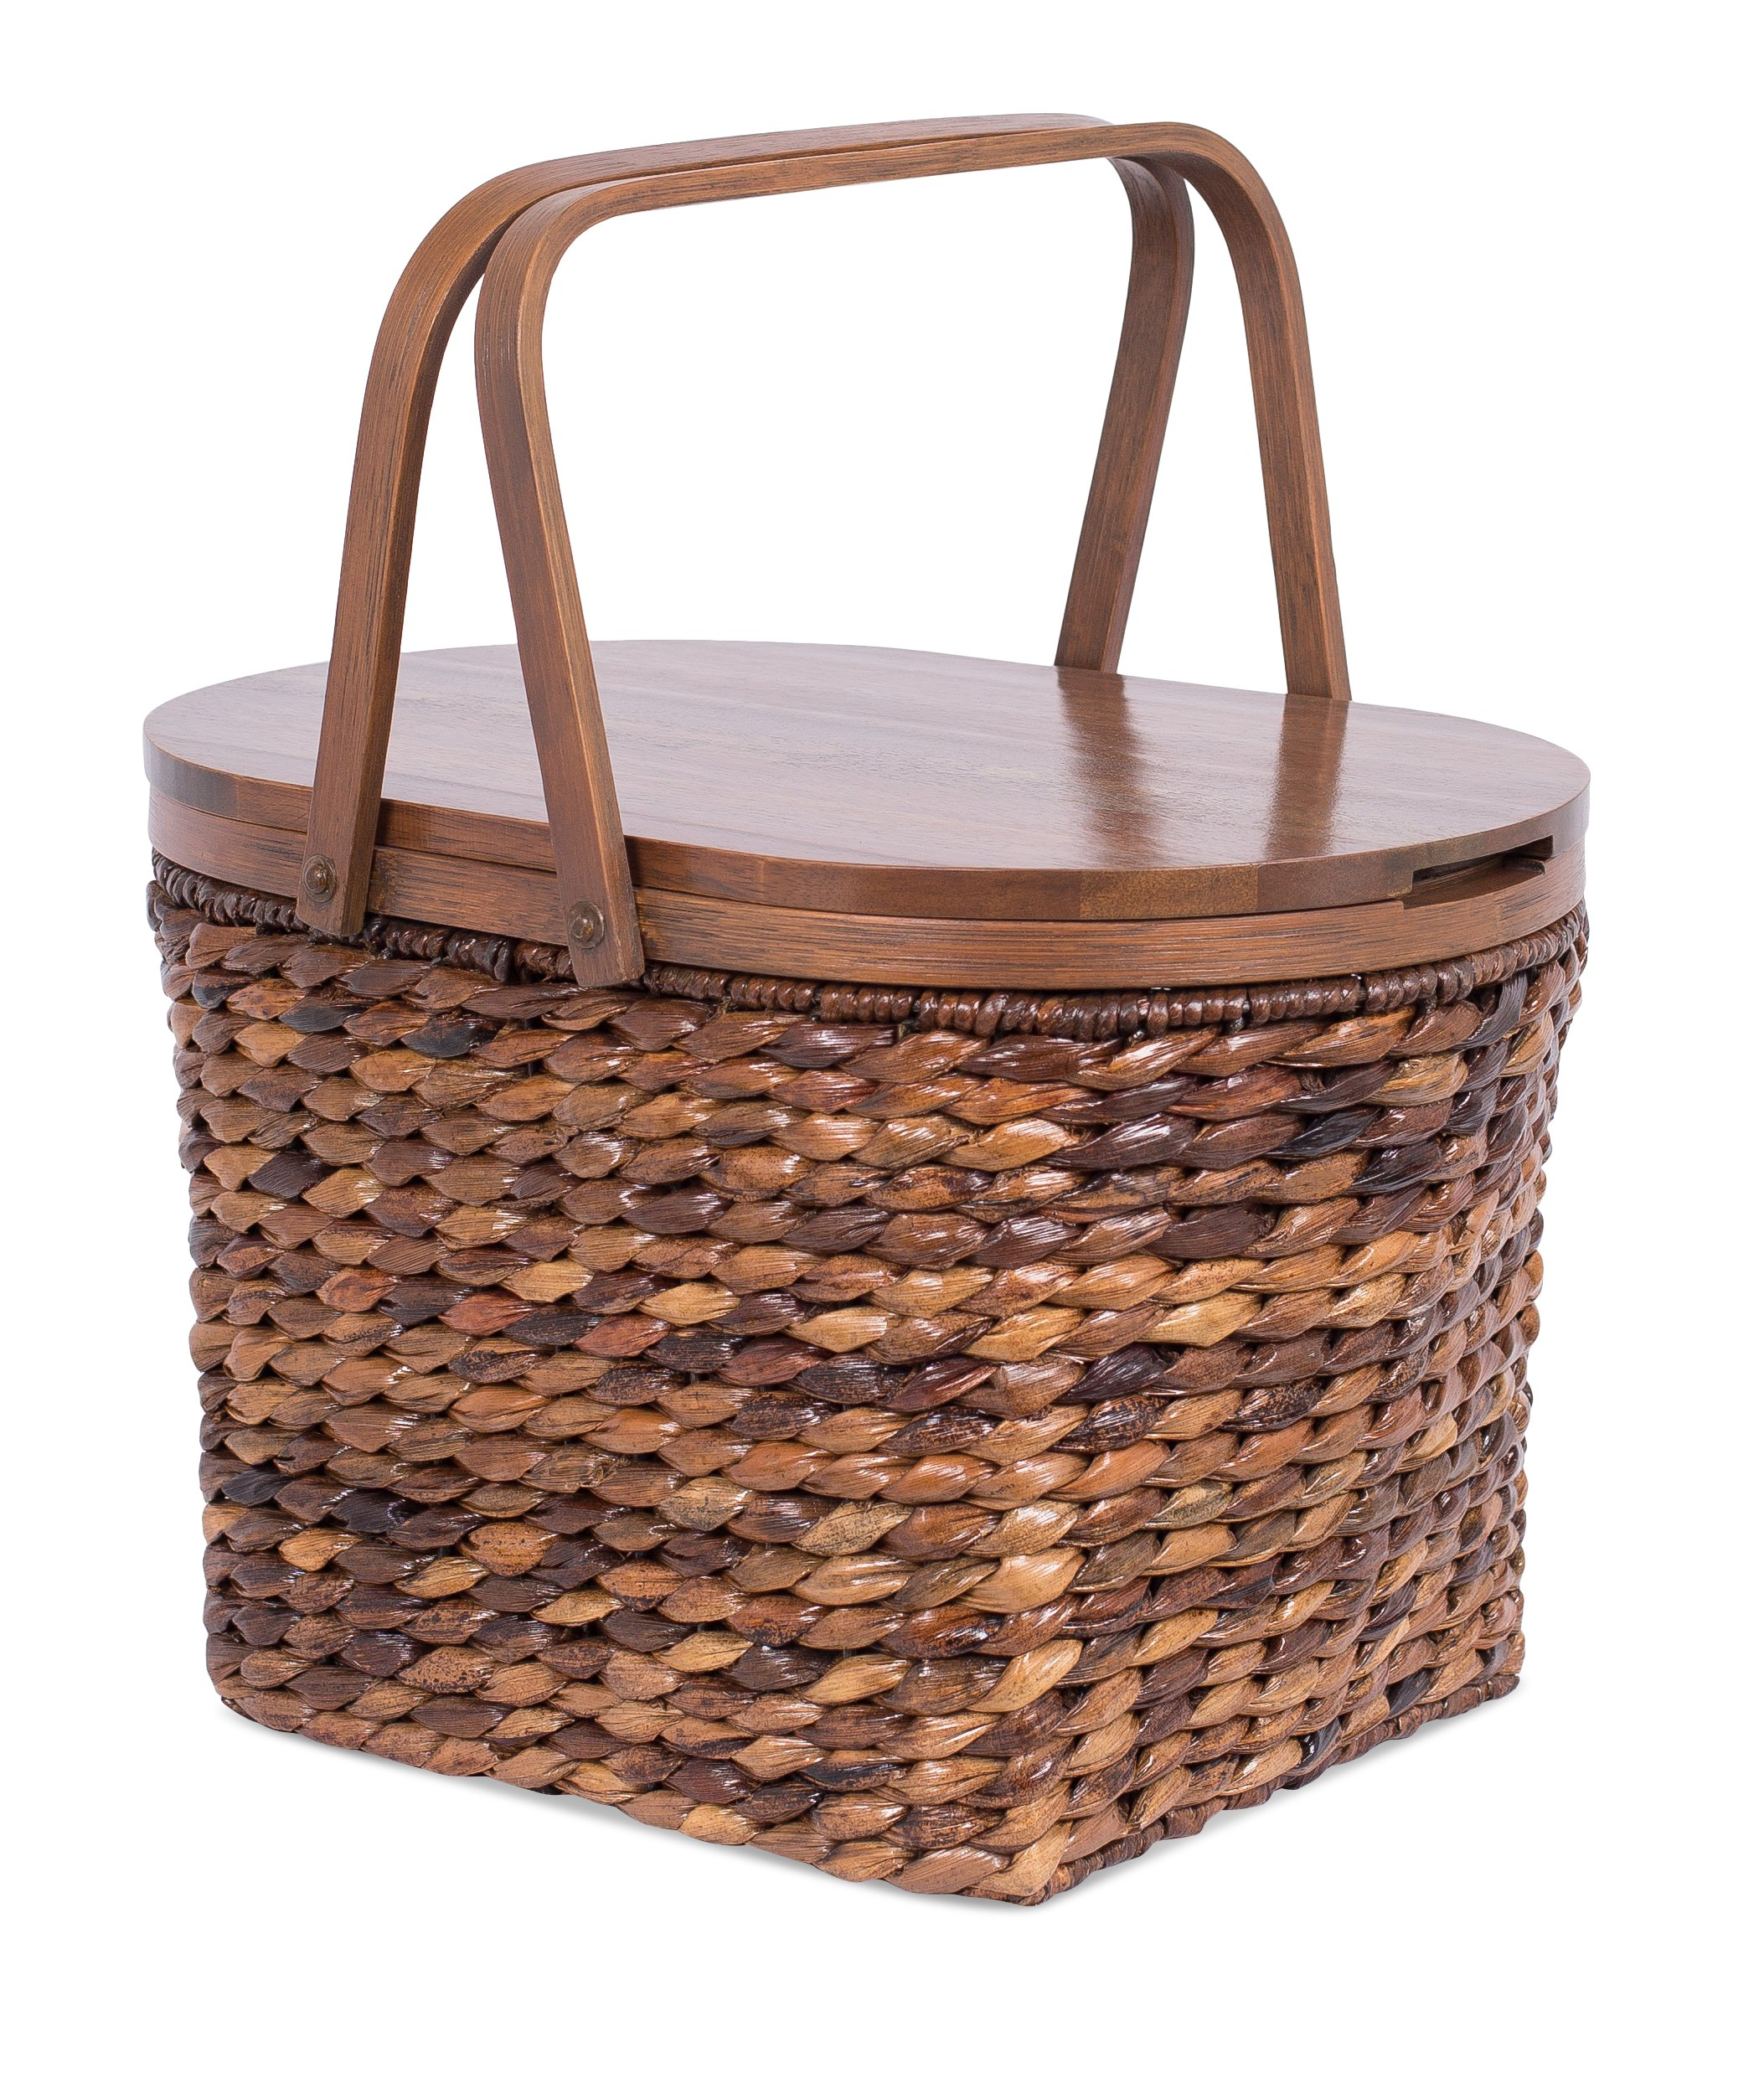 BirdRock Home Seagrass and Abaca Picnic Basket with Wood Lid | Hand Woven | Espresso | Decorative Latch | Wooden Top | Home Décor | Folding Handles